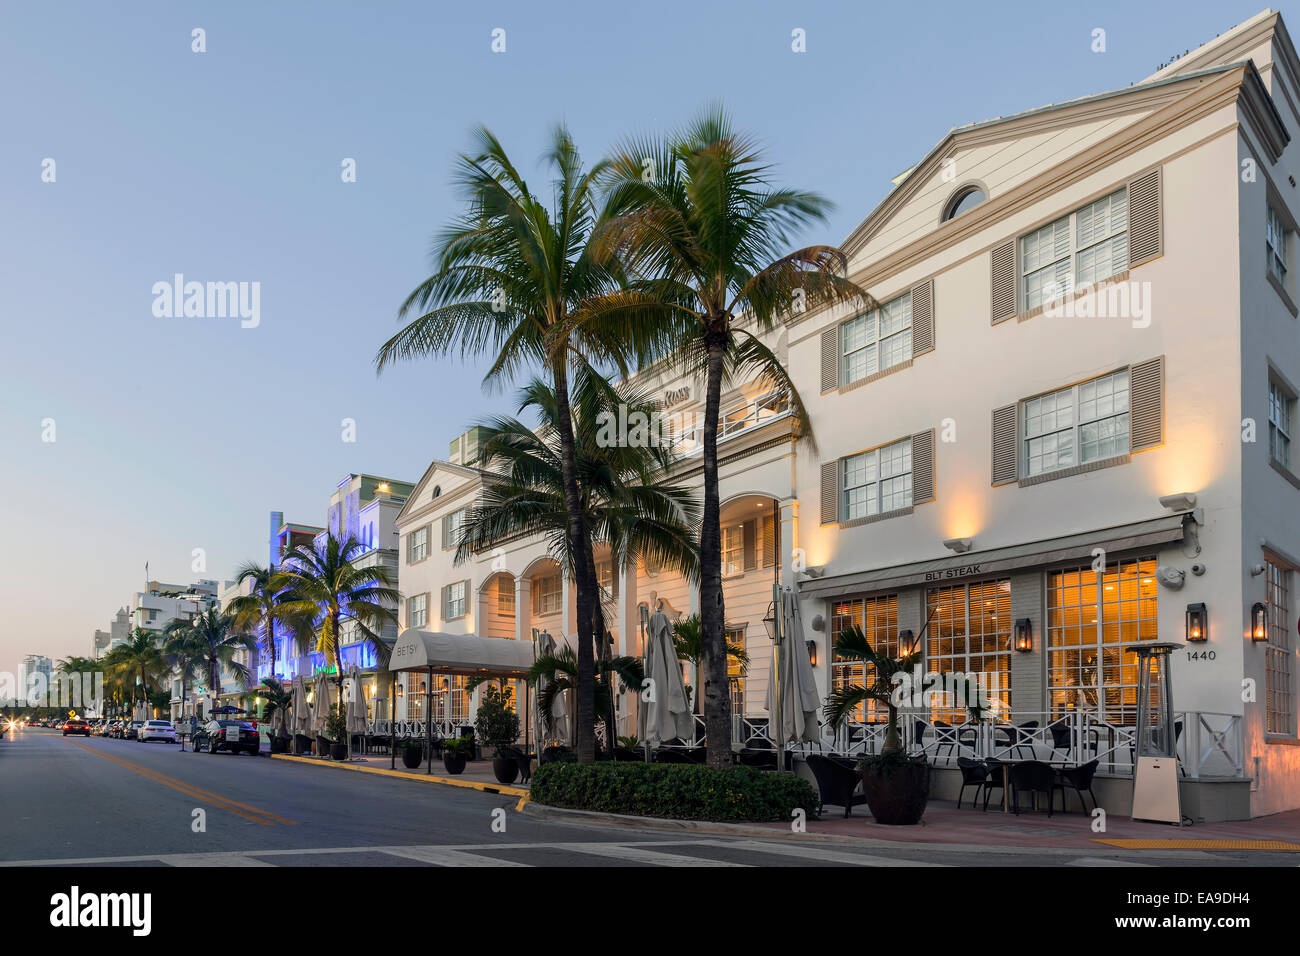 Betsy Ross Hotel and BLT Steak Restaurant in the early dawn light along Deco Drive in Miami's South Beach, Florida, Stock Photo